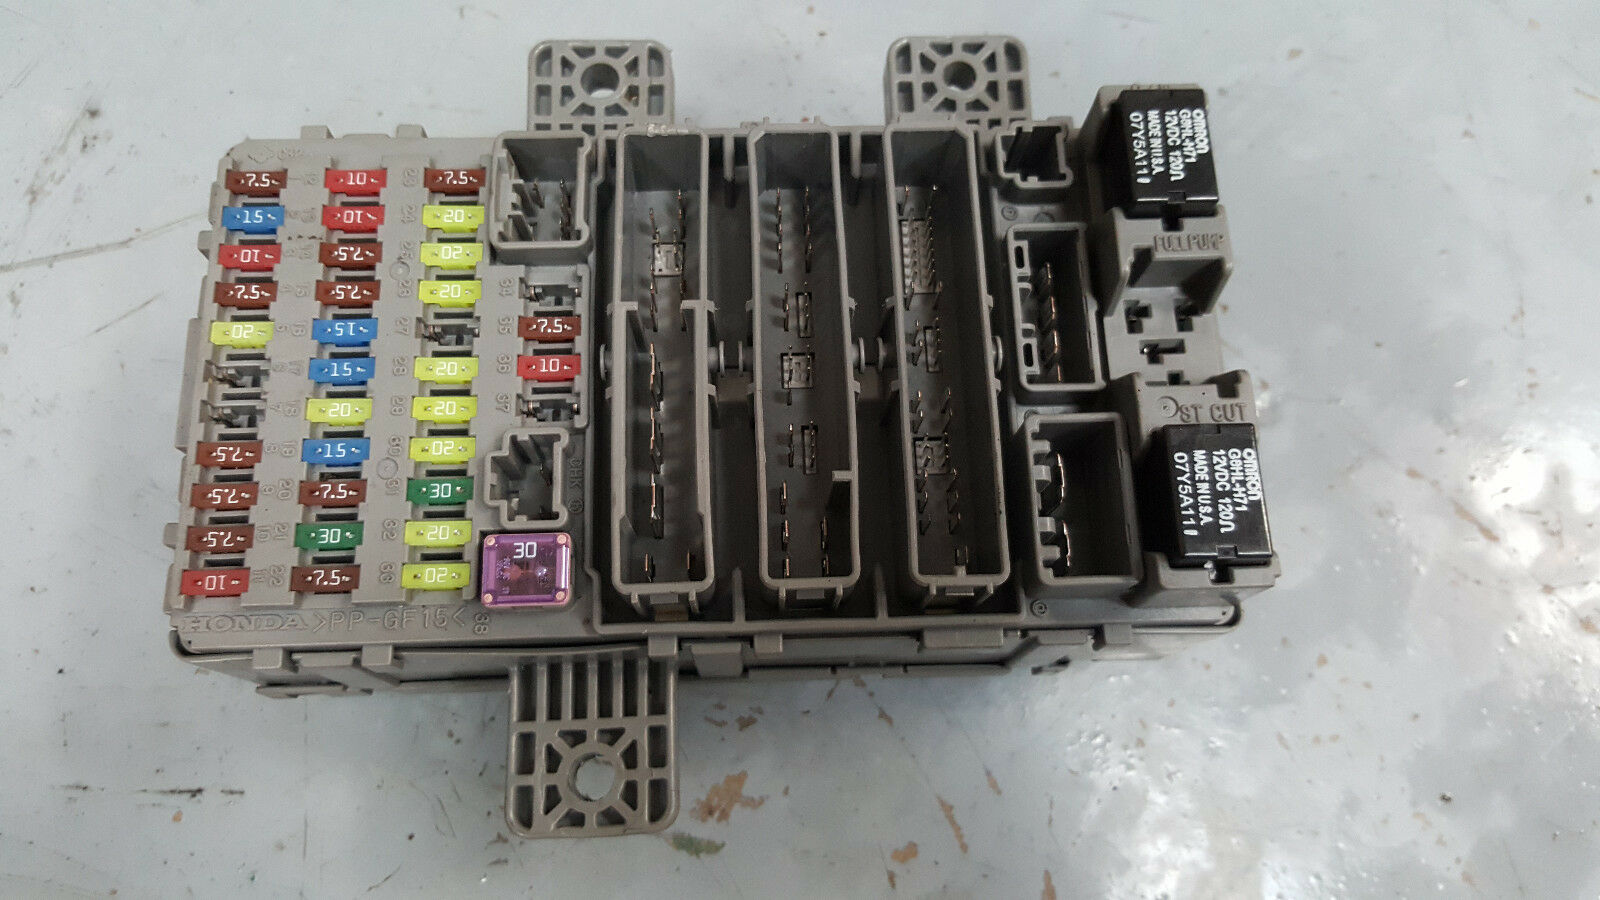 Honda Civic Mk8 06-11 Interior Fuse Box 37842Rn 1 of 3Only 1 available ...